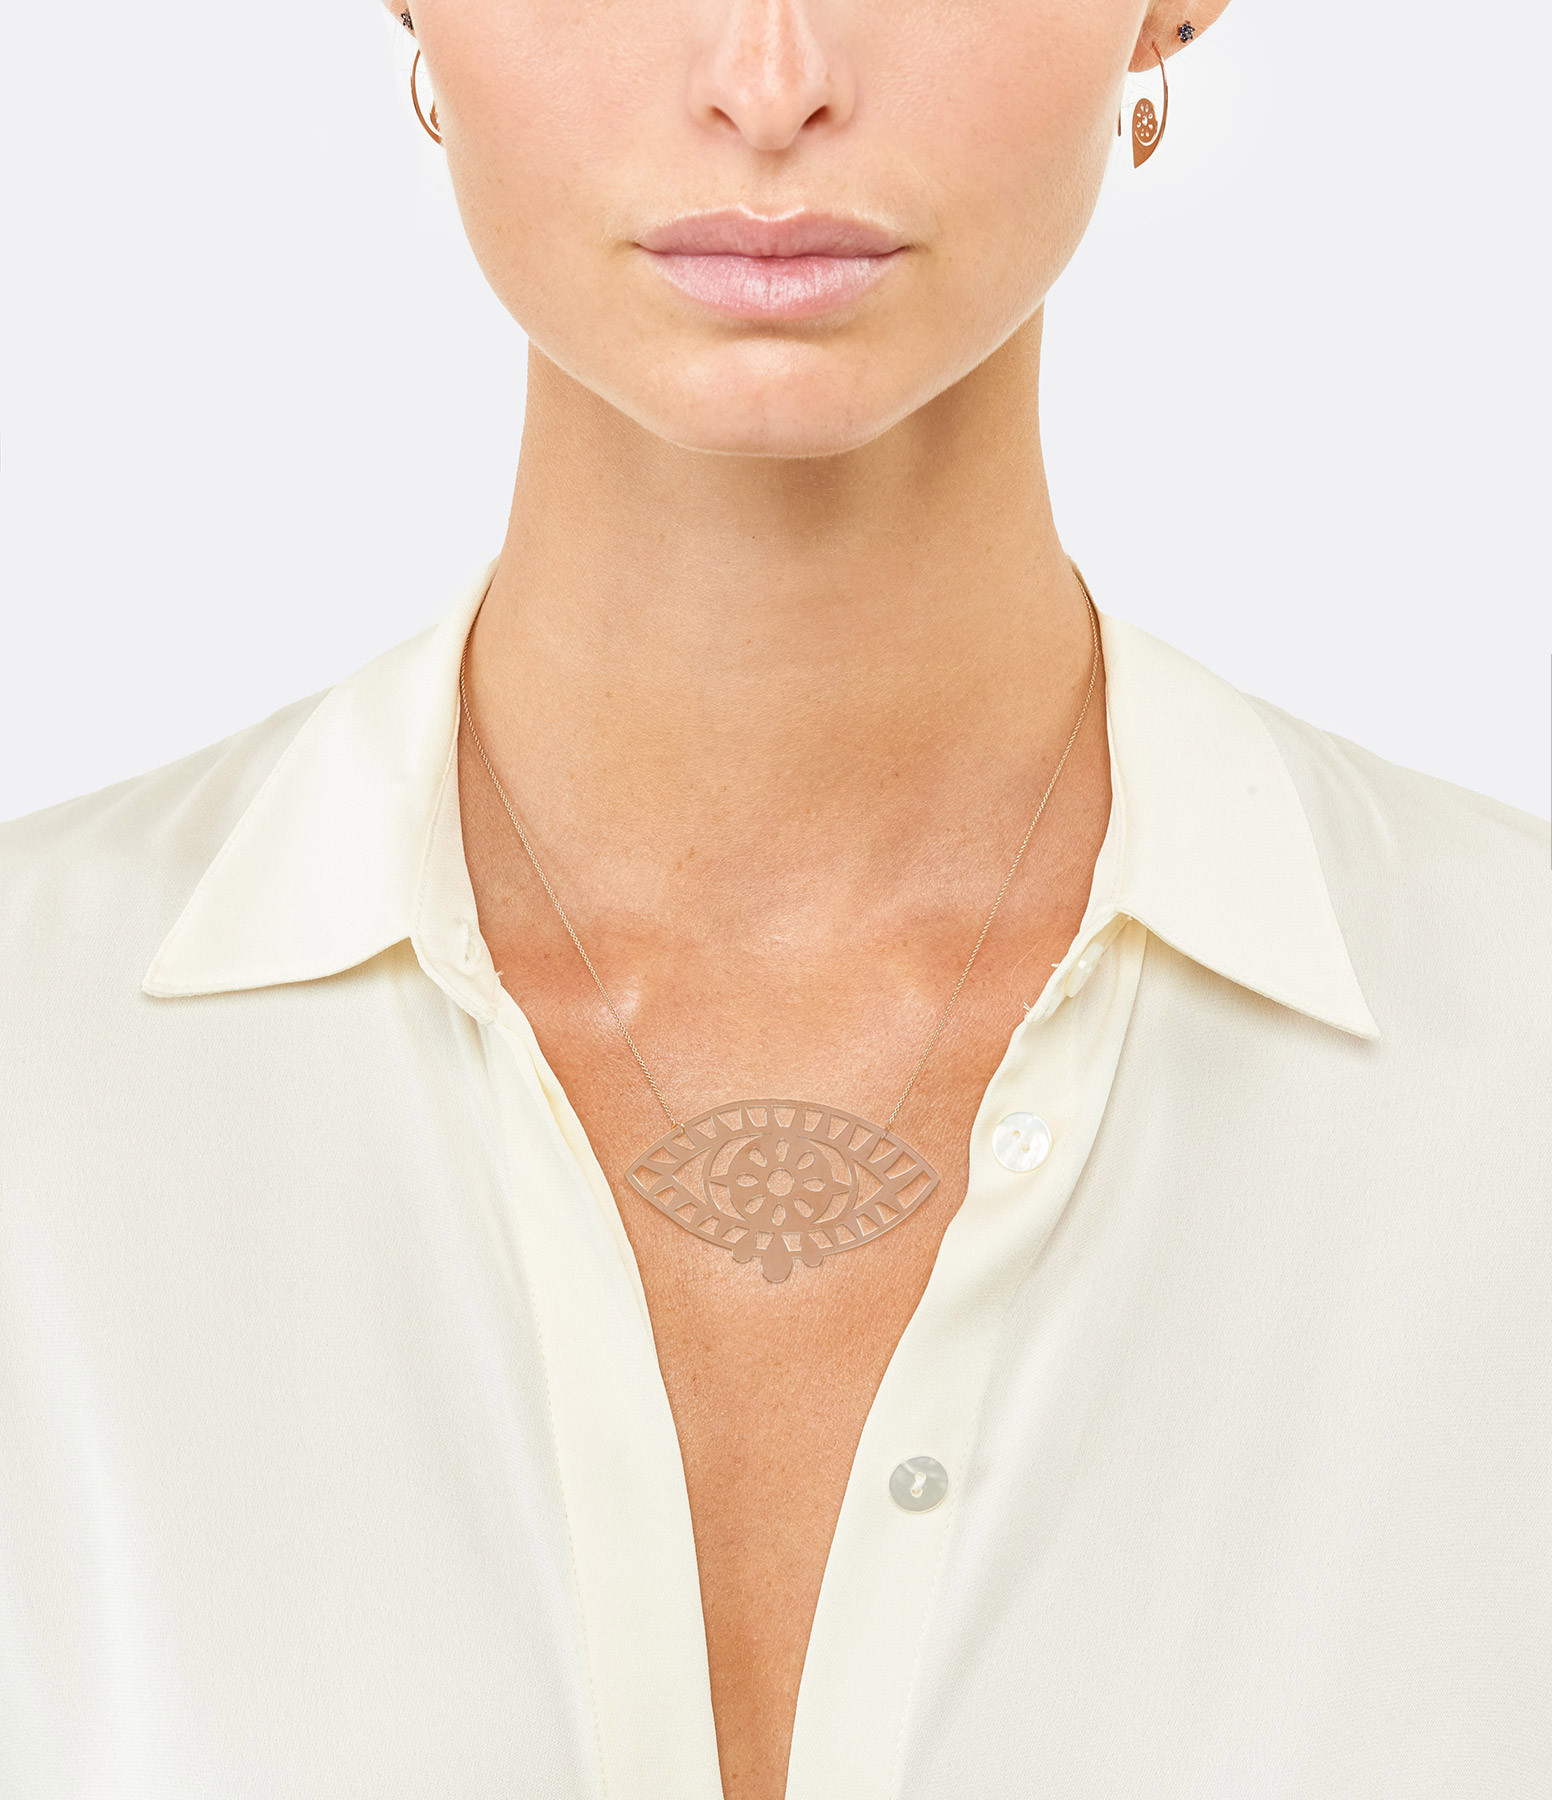 GINETTE NY - Collier Ajna Jumbo Or Rose